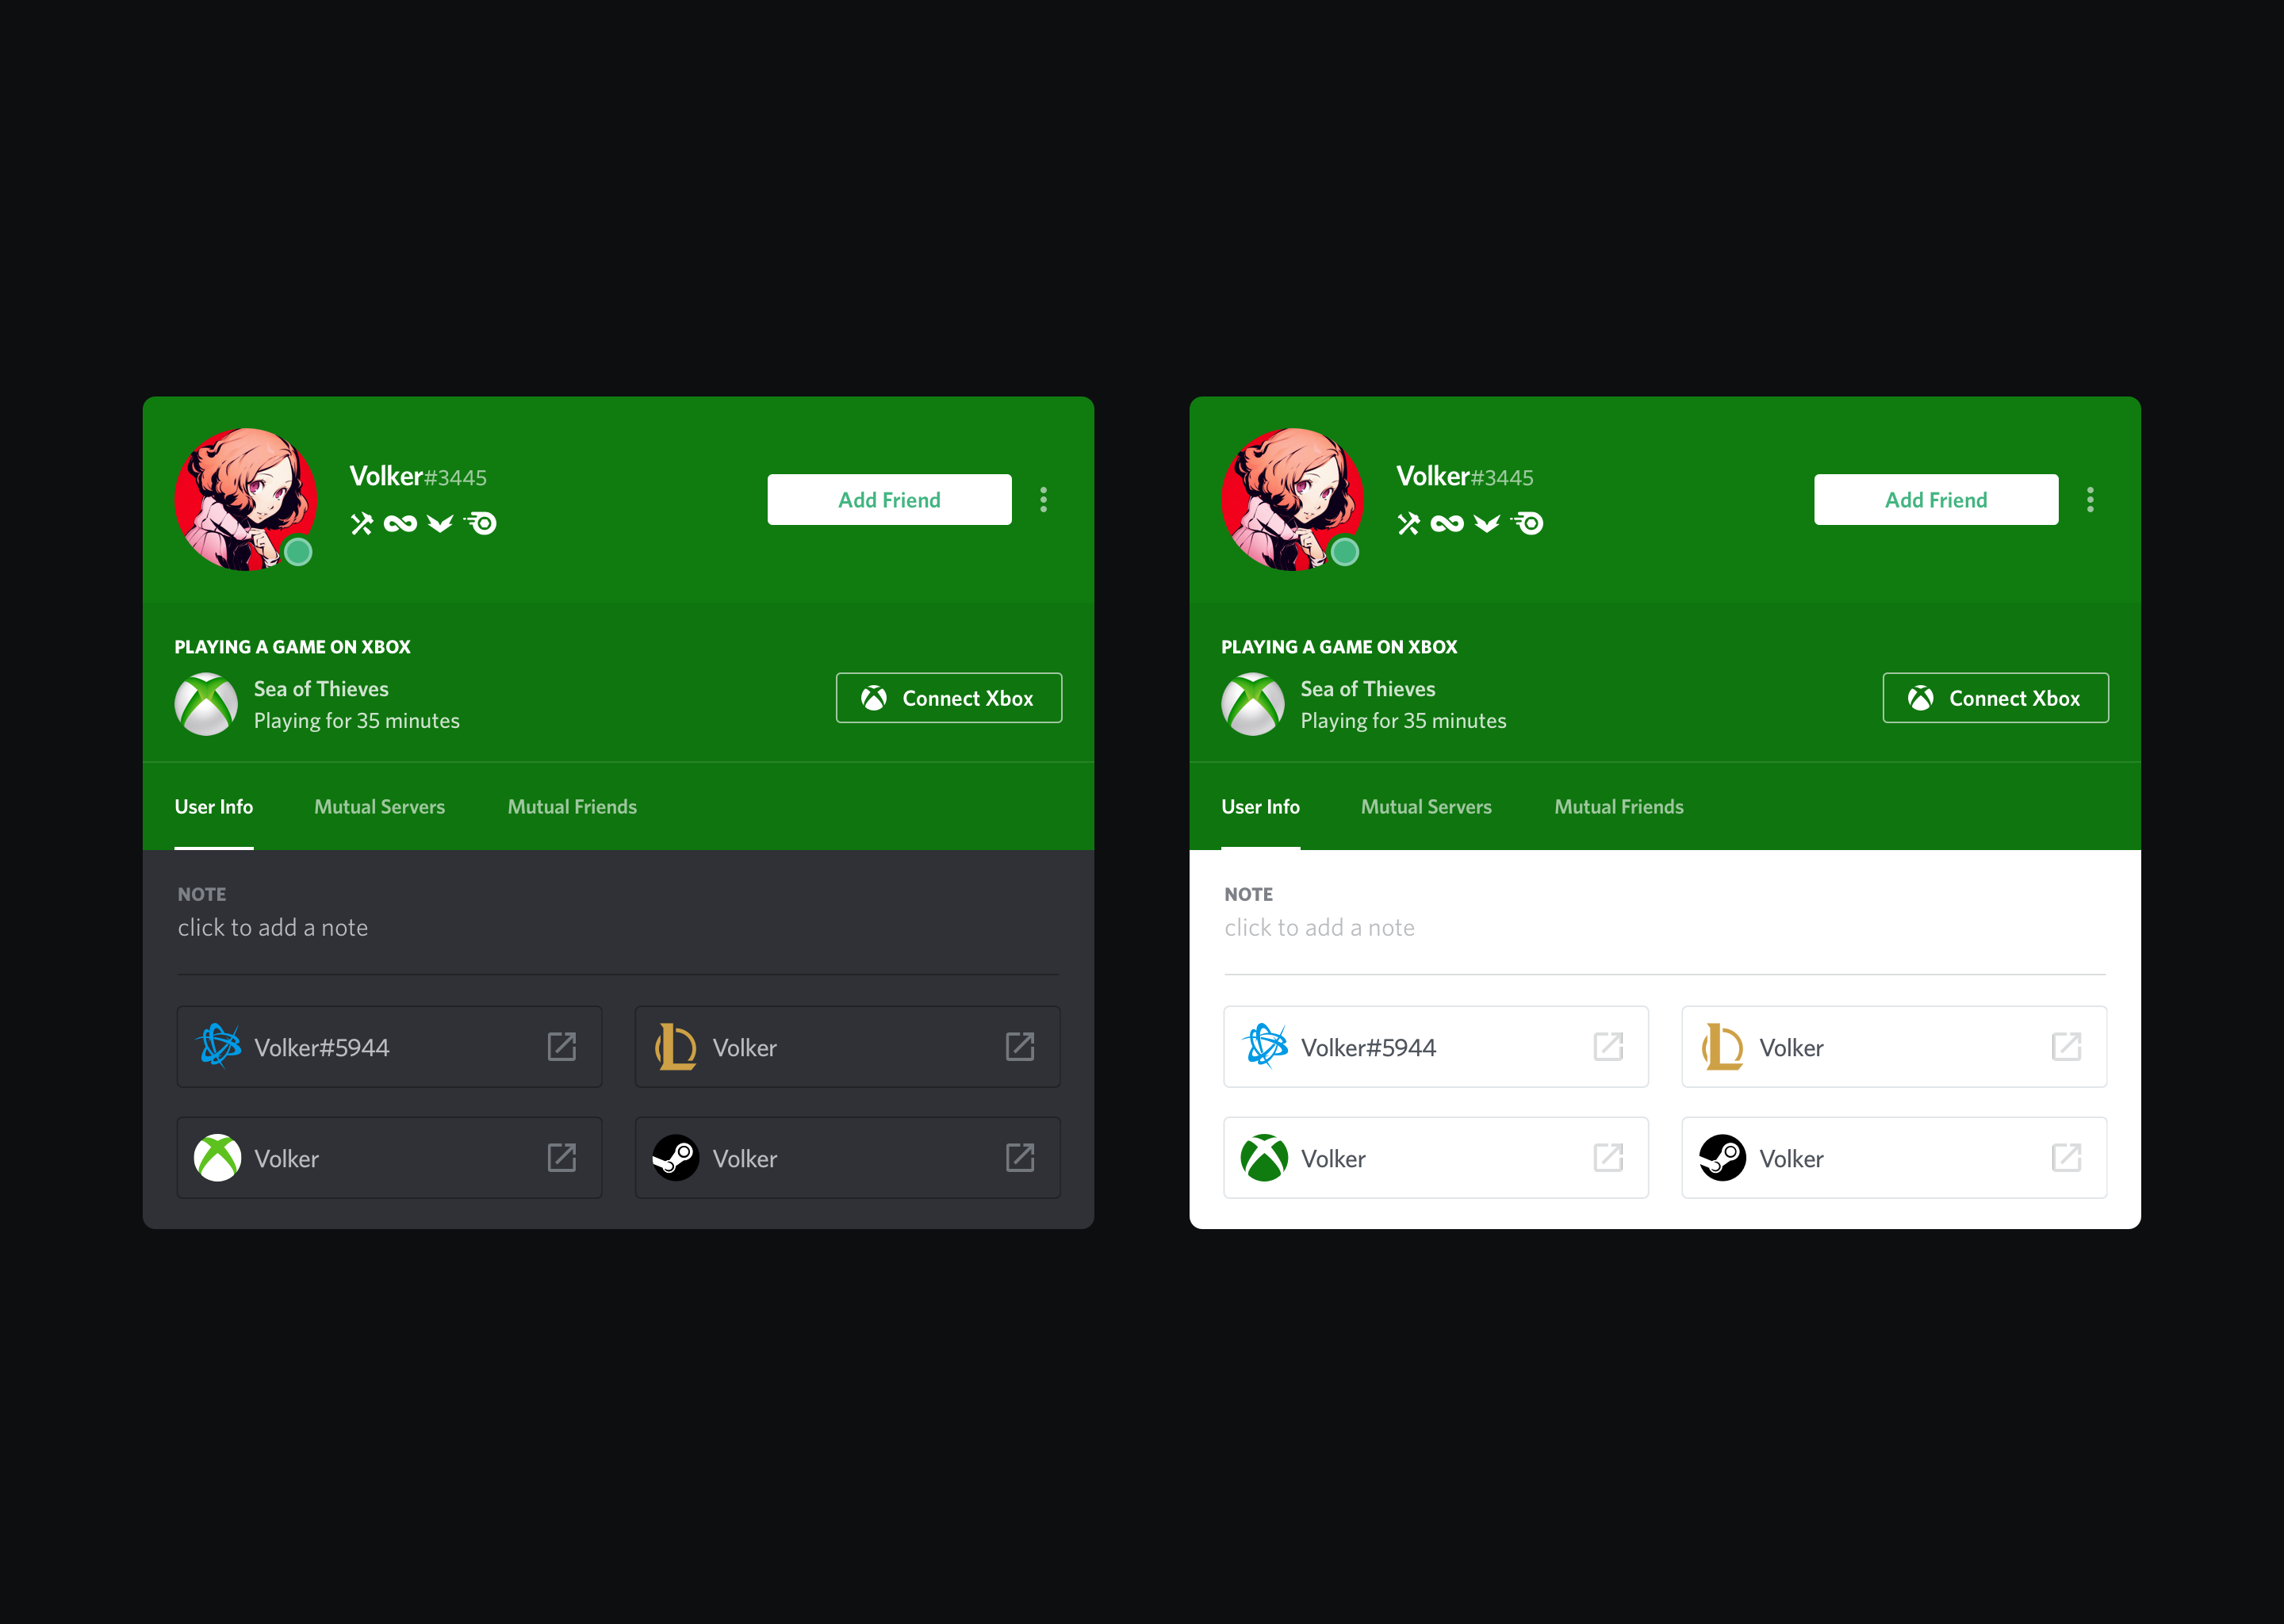 Microsoft partners with Discord to connect gamers across Xbox Live and Discord